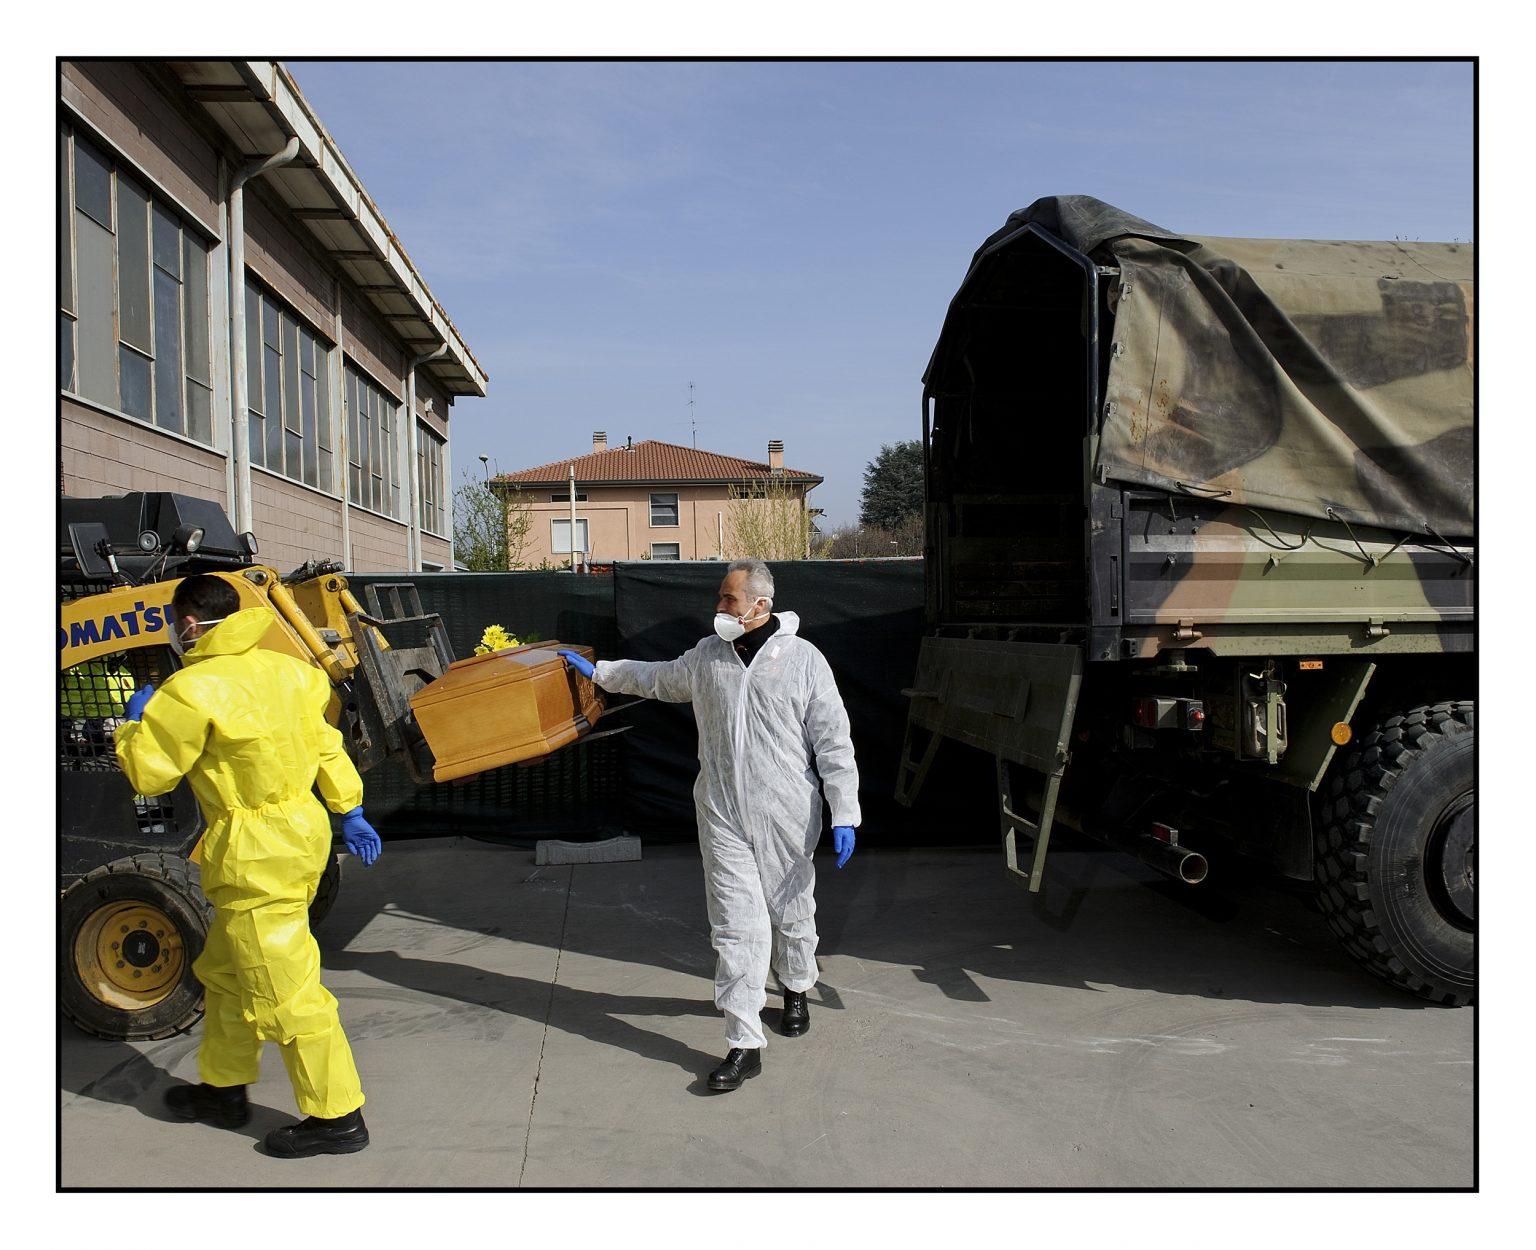 Coffin depots in Bergamo area. The coffins that have flowed into the emergency depot of Ponte San Pietro, where the dead people from the western part of the Bergamo province are collected. A Carabiniere touches a coffin just loaded onto a truck, for a moment of prayer. The Esercito Italiano (Italian Army) carry out the loading operations for the transport out of the province, to the available crematory ovens. Ponte San Pietro, March 28, 2020